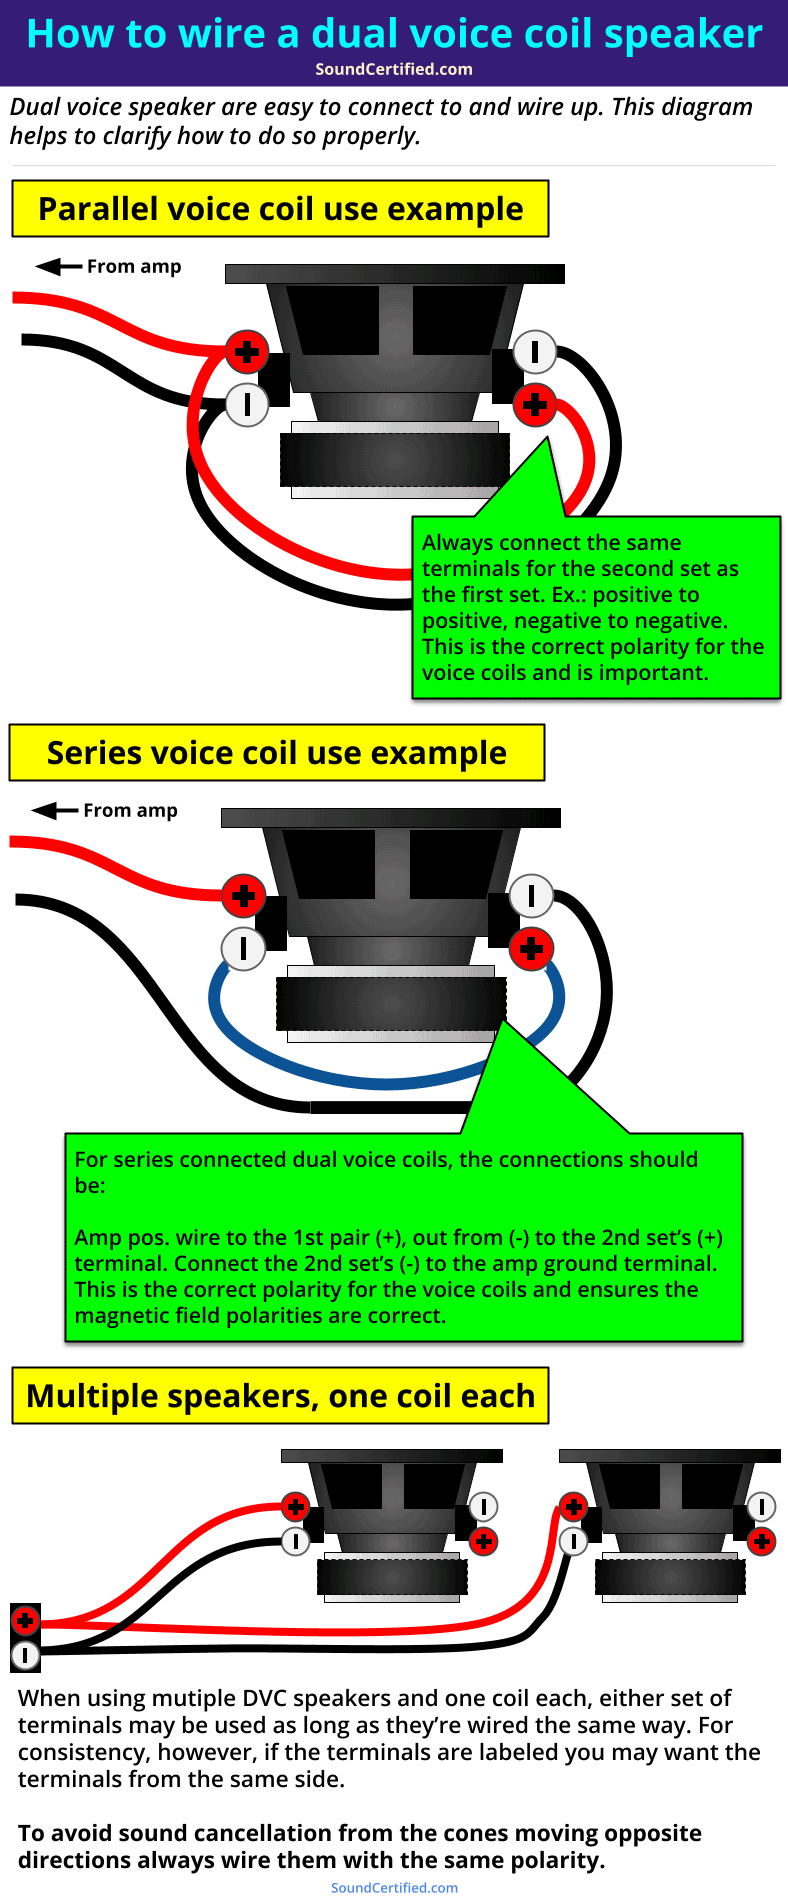 how to wire a dual coil coil speaker diagram